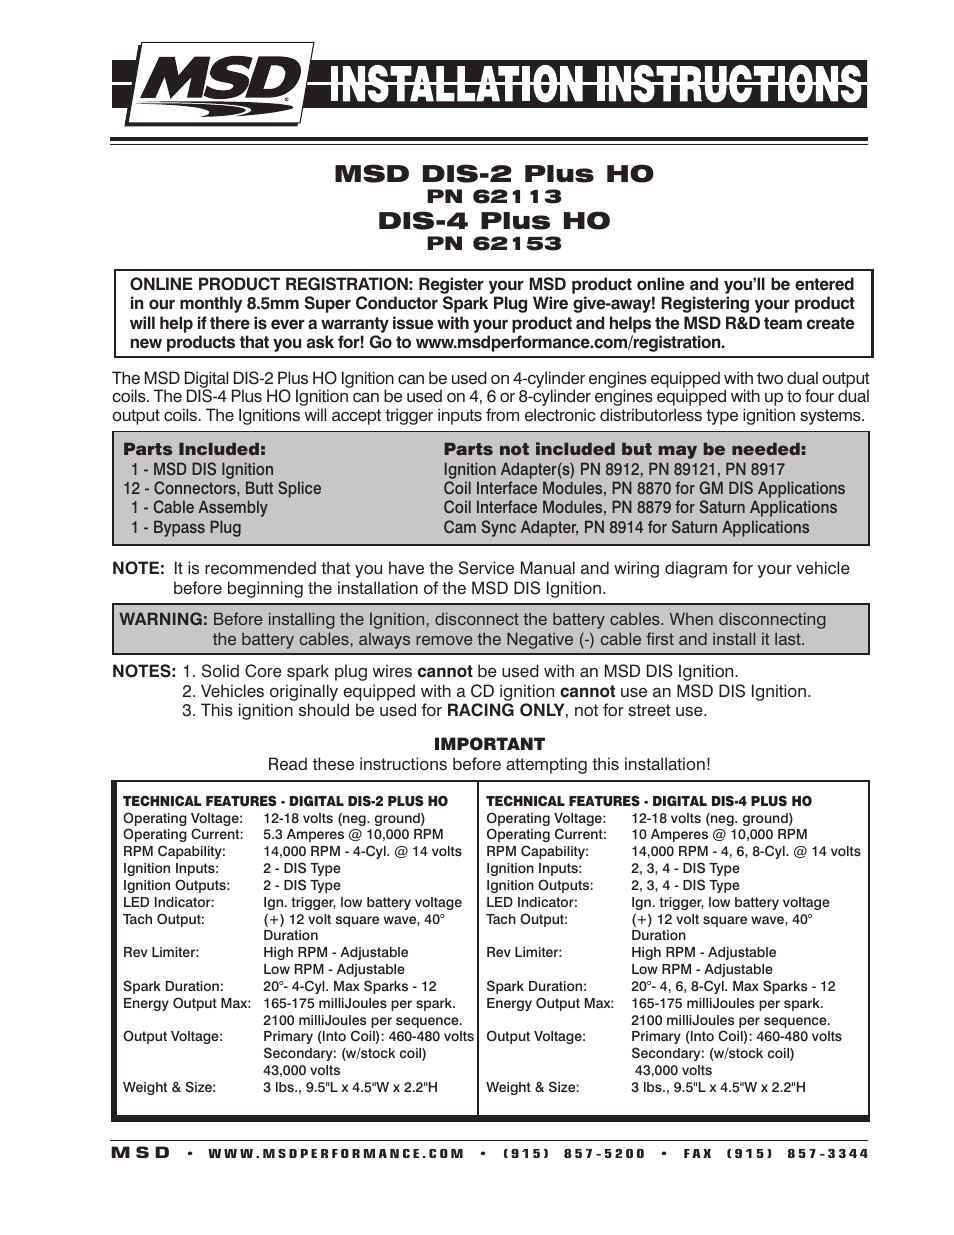 msd 62153 dis 4 plus high output installation user manual 16 pages